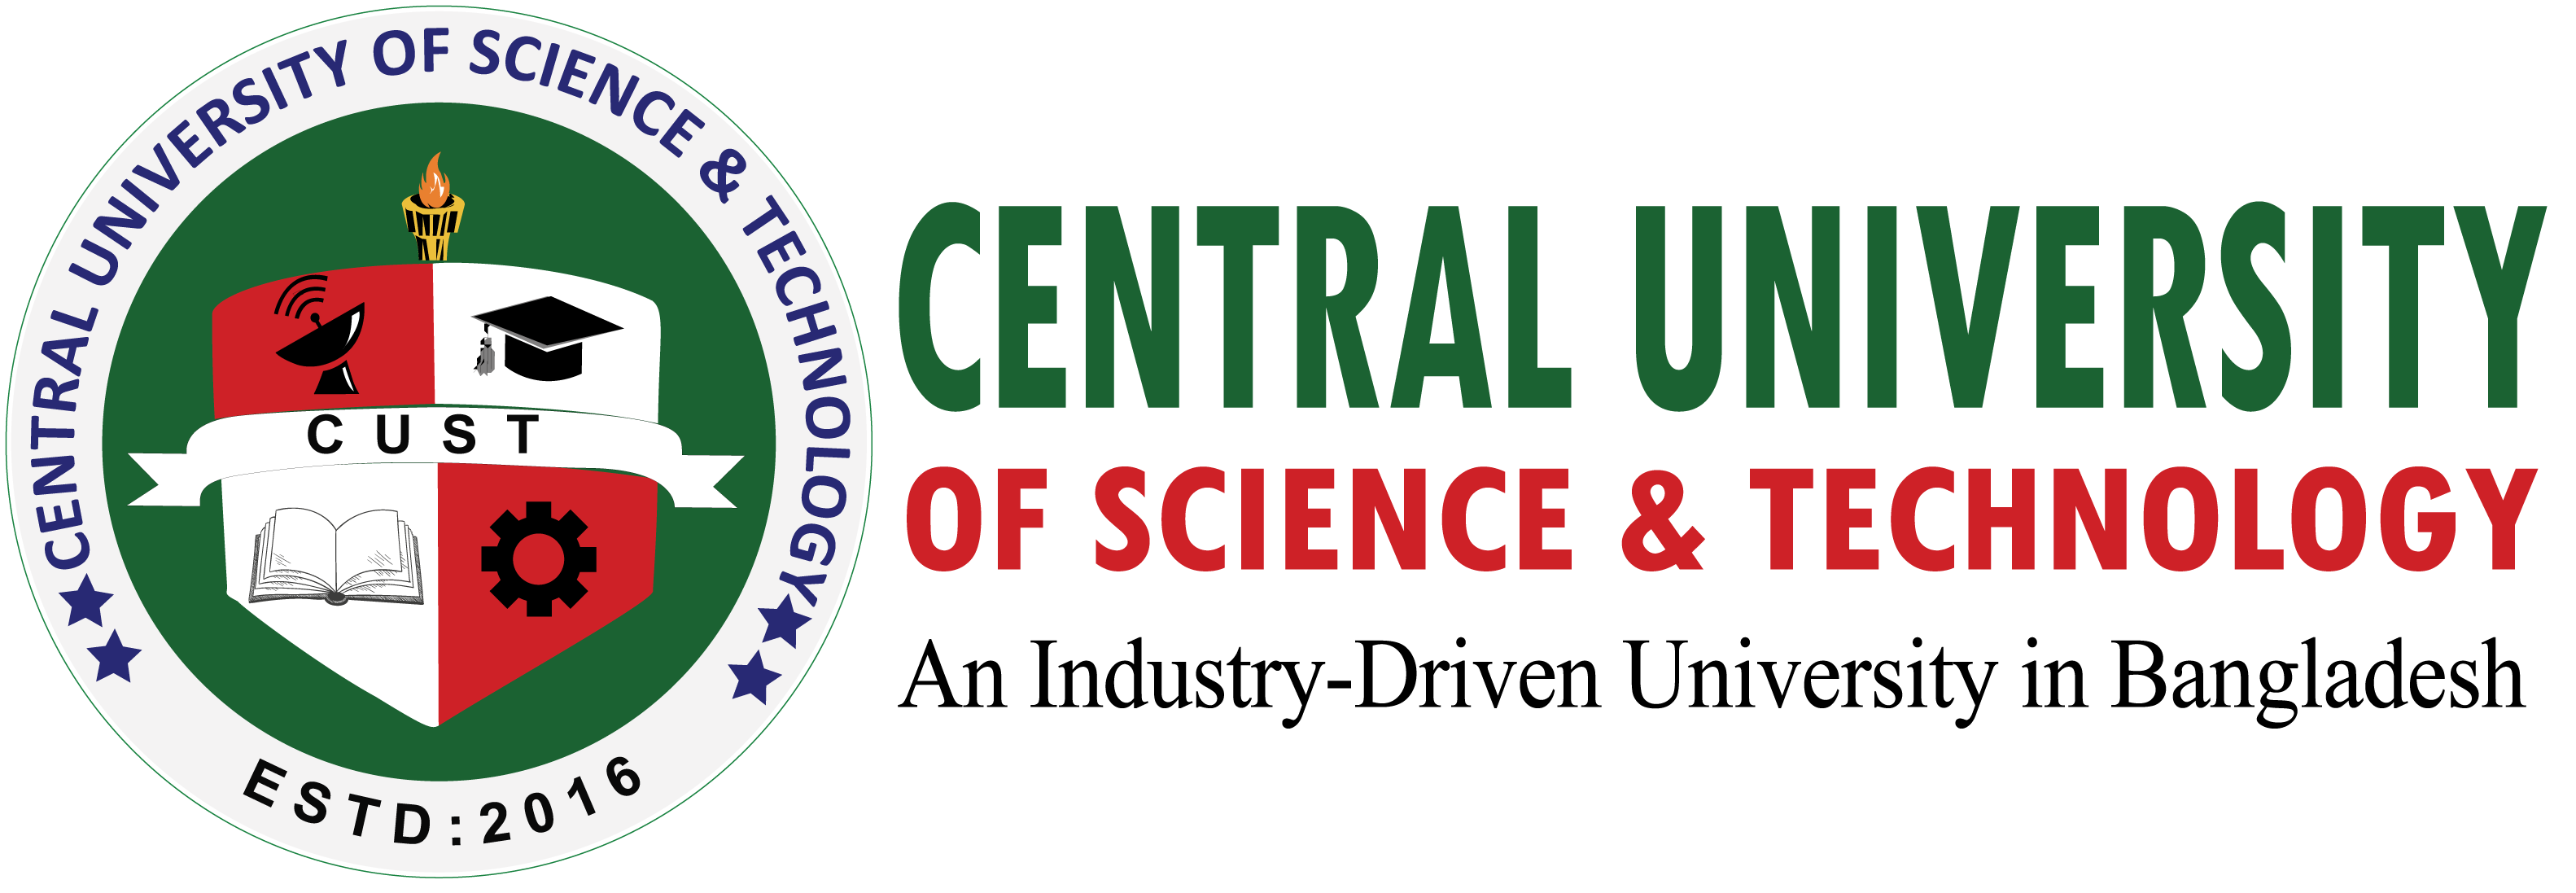 Vision, Mission & Values - Central University of Science & Technology